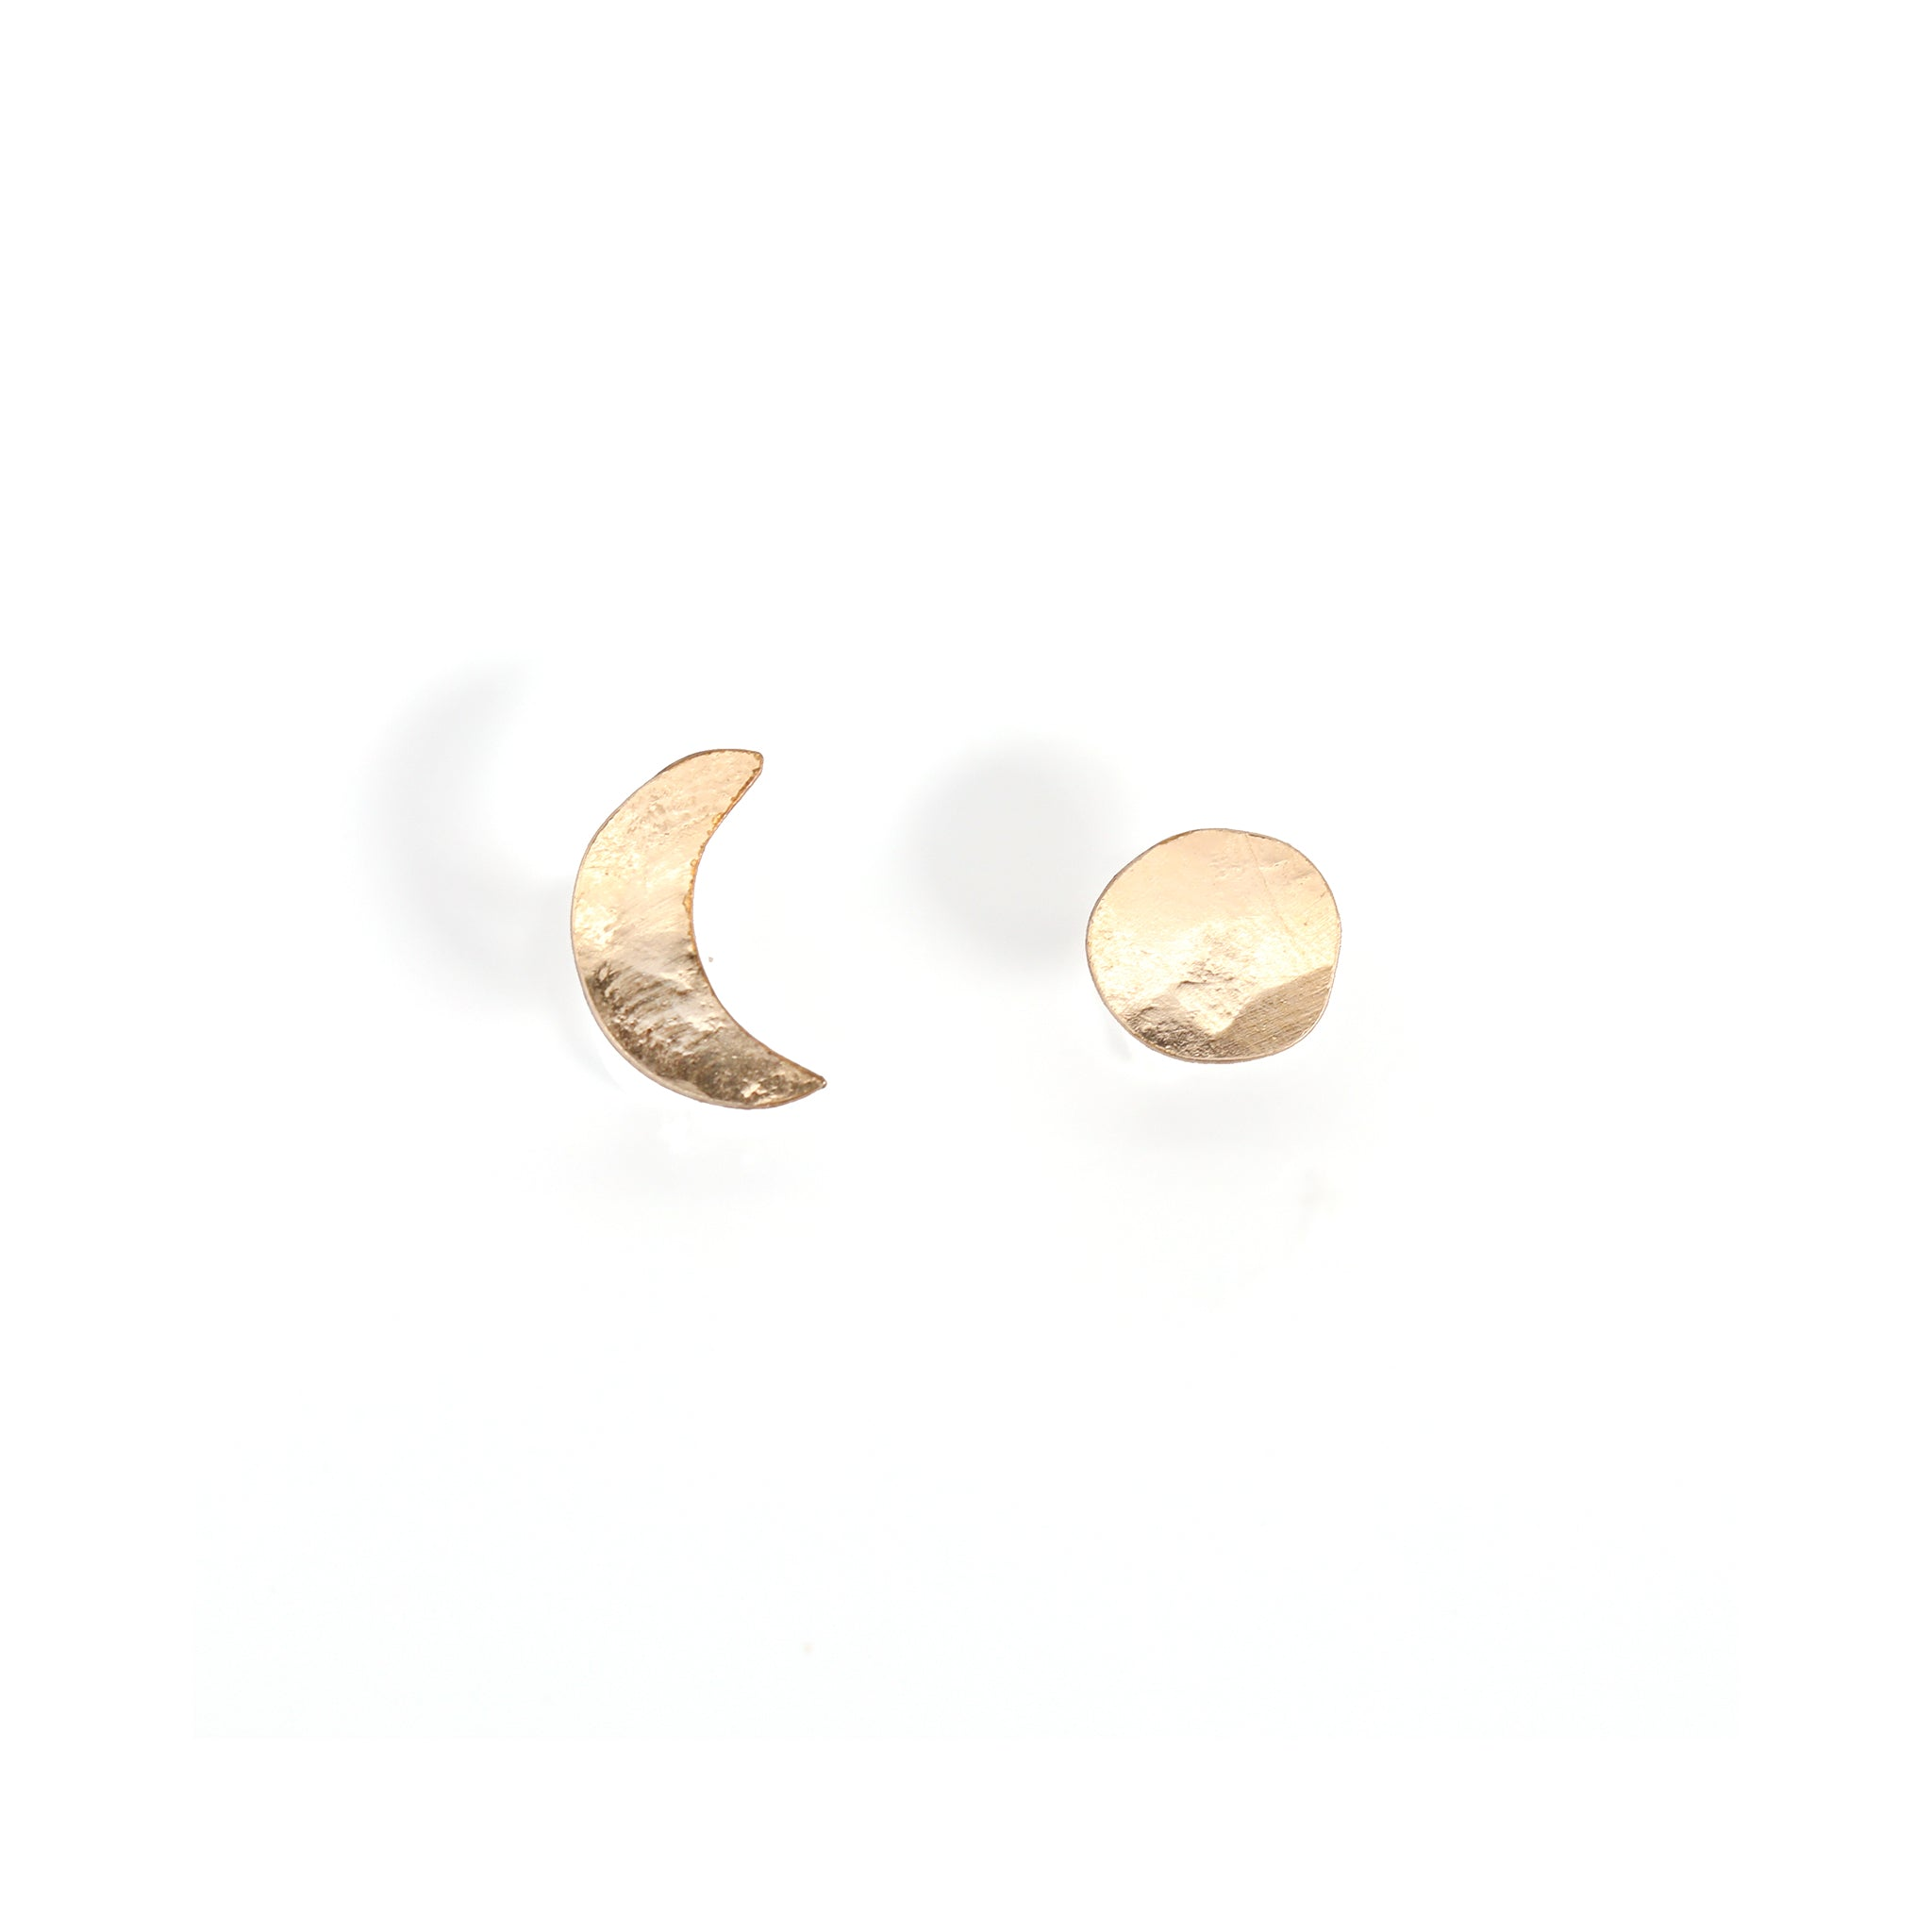 Mixed Moon Phases Earrings